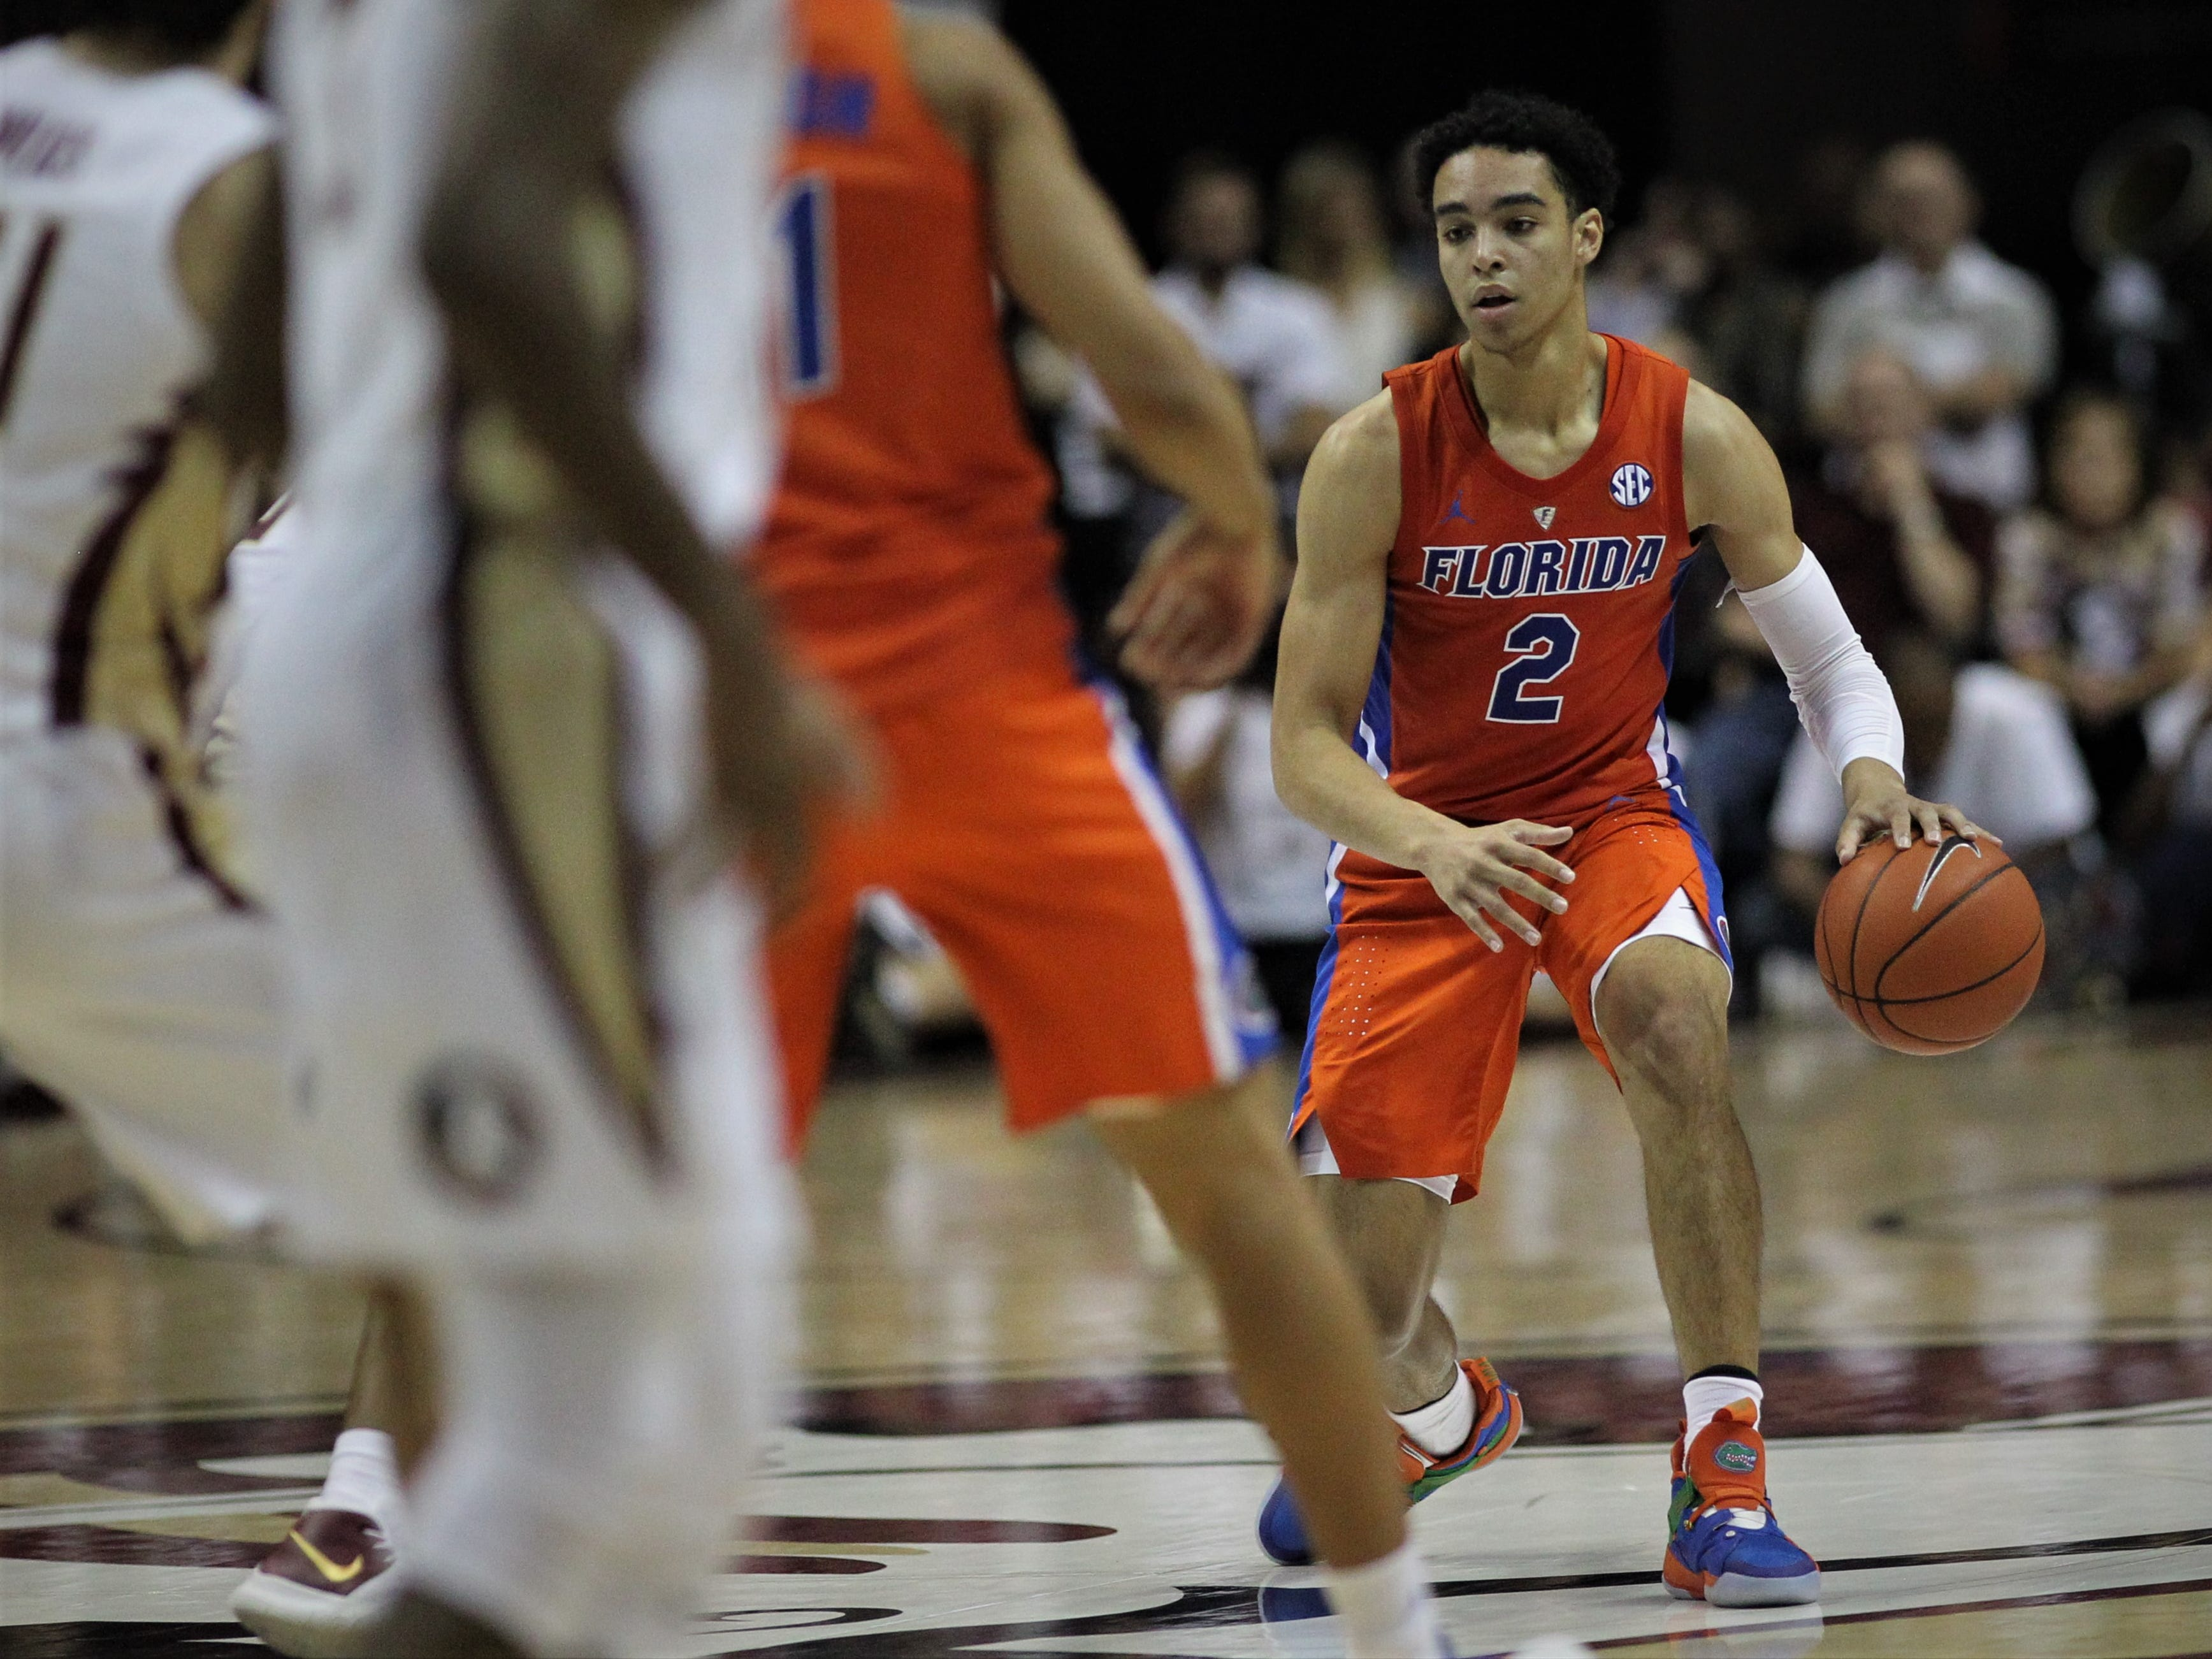 Florida's Andrew Nembhard looks for room against FSU during the Sunshine Showdown game Tuesday at the Tucker Civic Center.